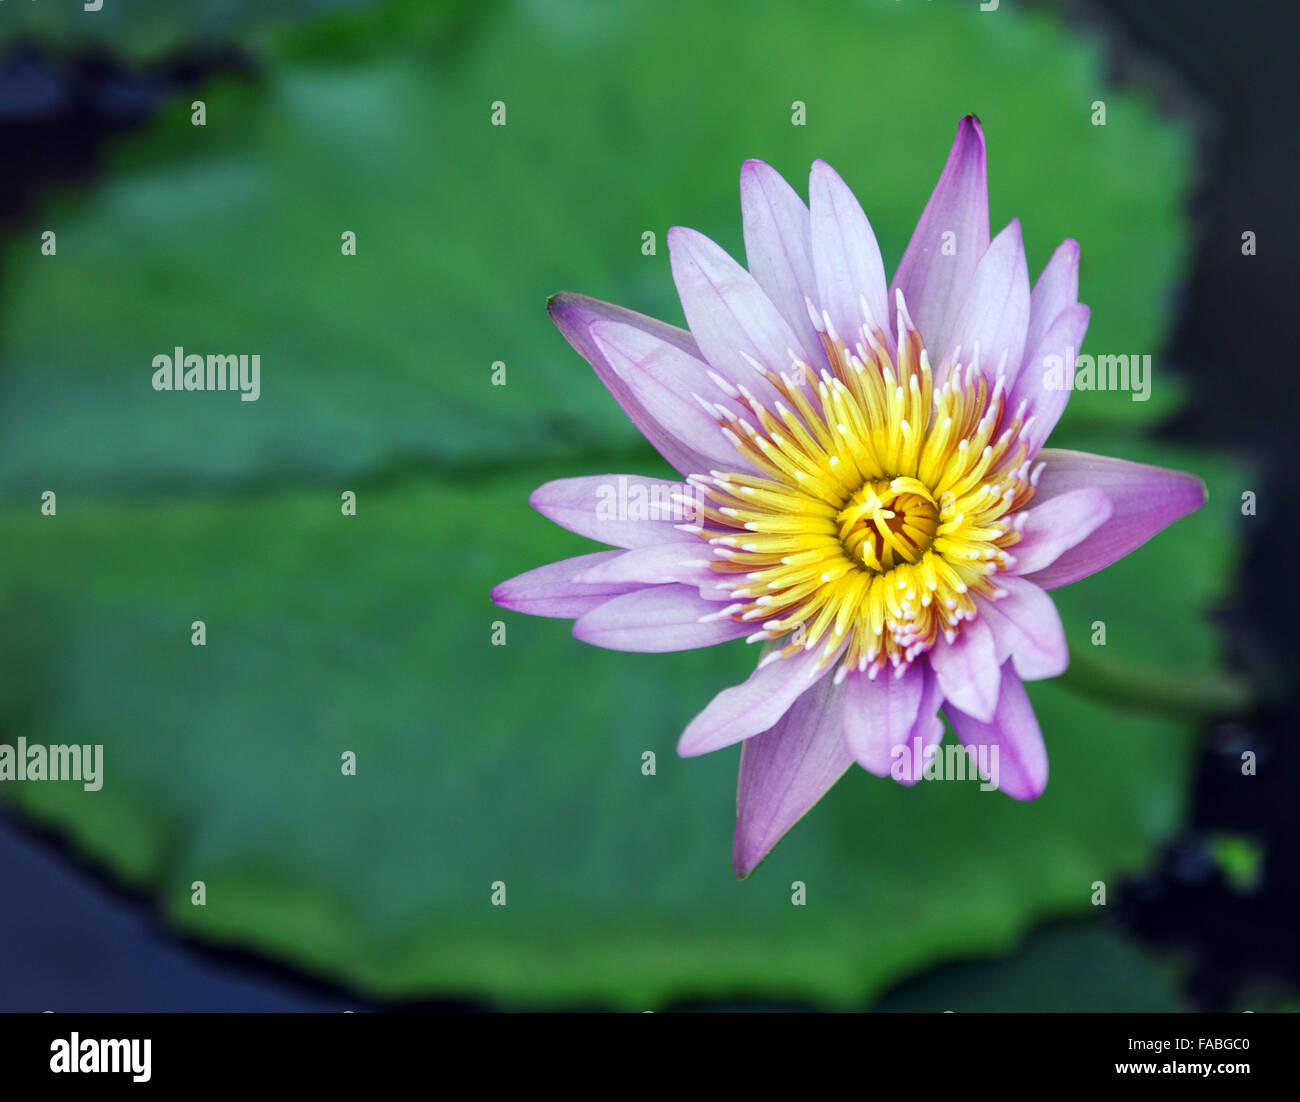 Top view of the purple lotus flower stock photo 92452752 alamy top view of the purple lotus flower izmirmasajfo